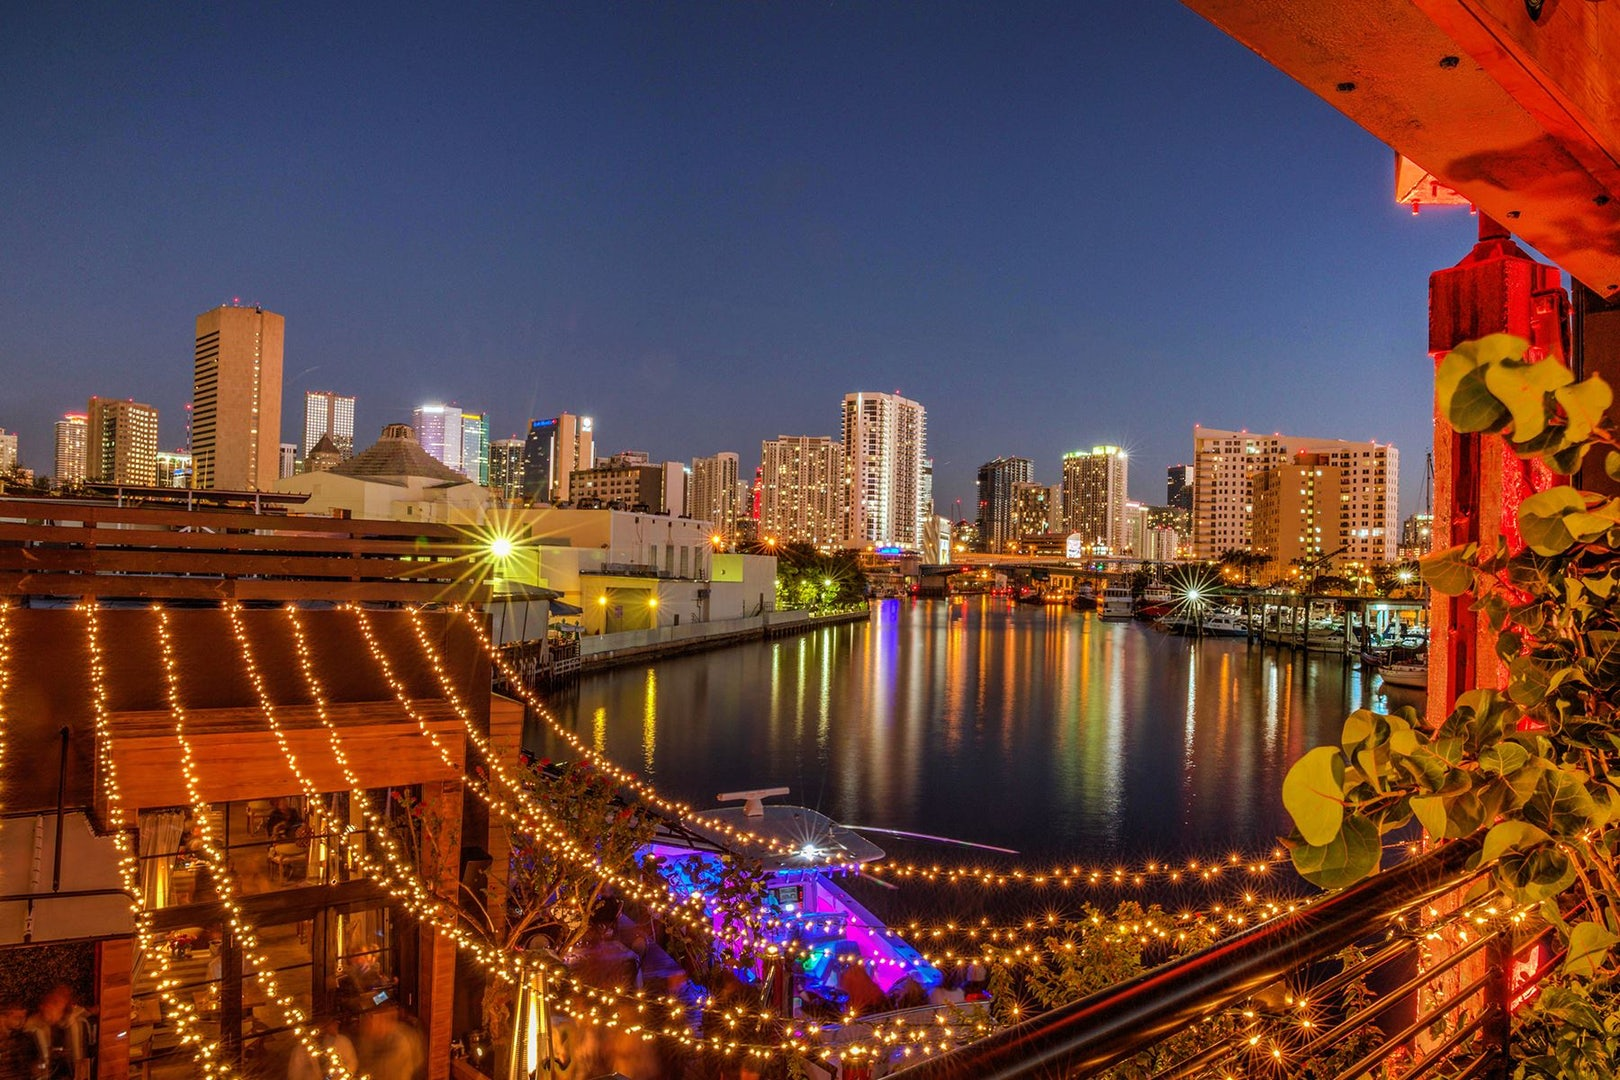 view over Miami city as seen from Seaspice bar